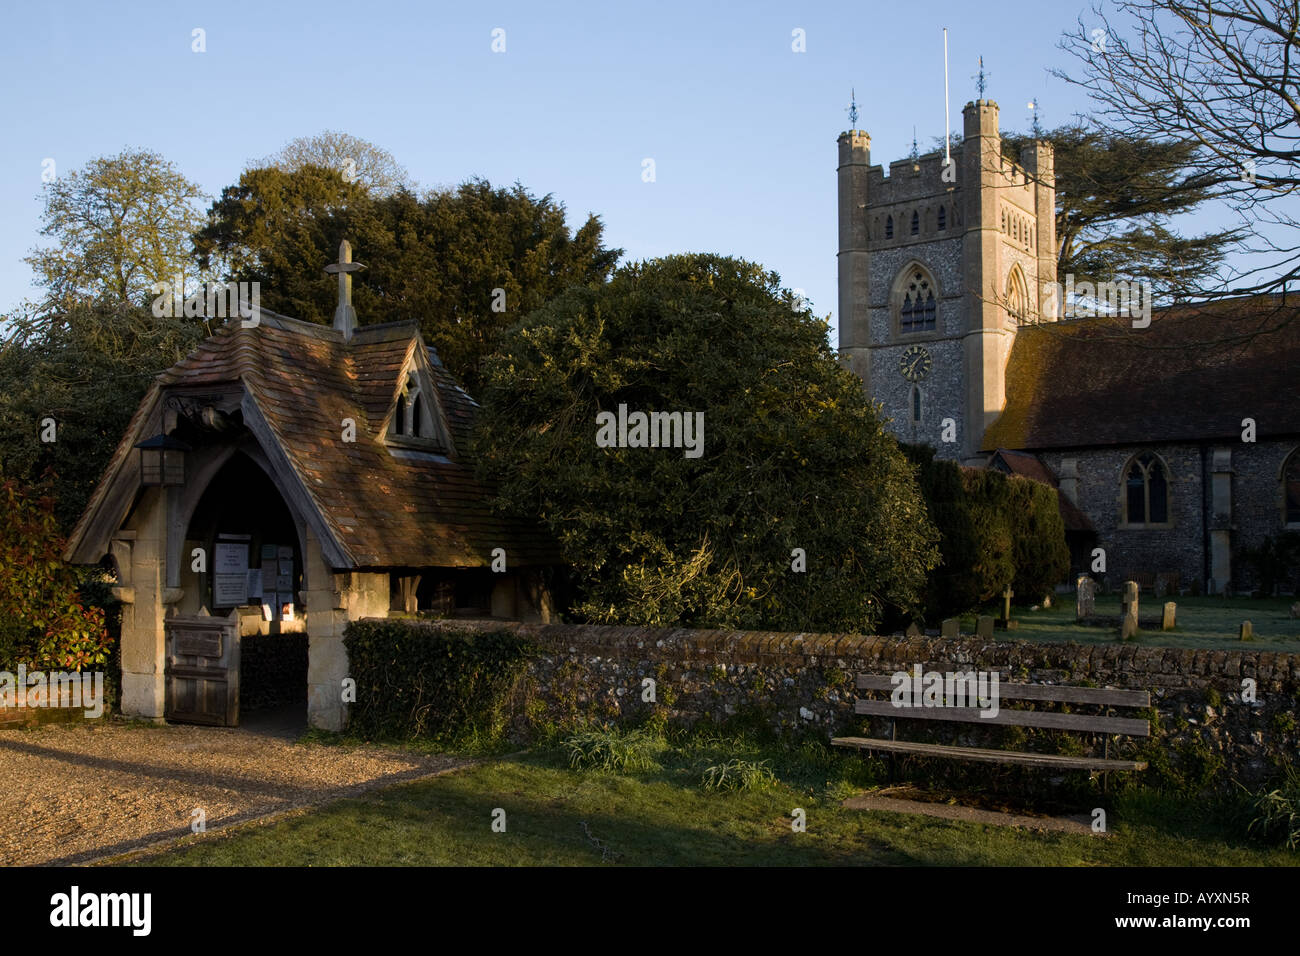 Lychgate entrance to St Mary the Virgin Hambleden rural village parish church - Stock Image